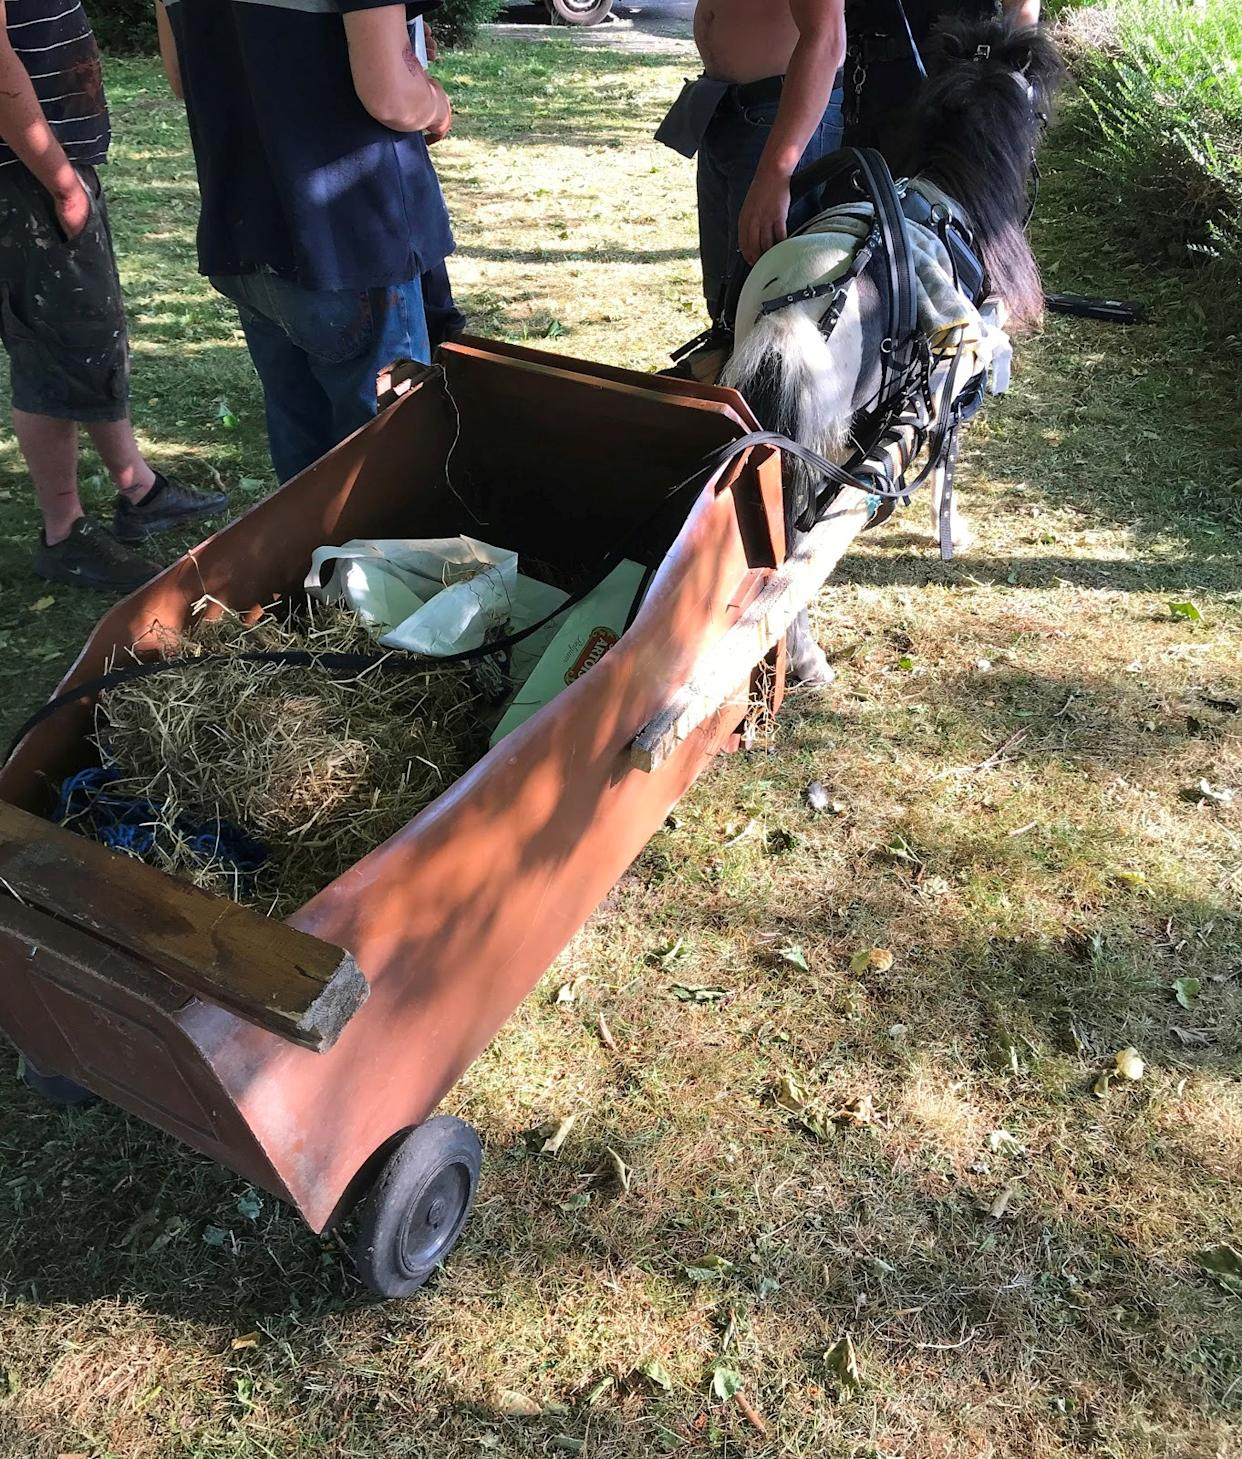 The carriage pulled by the pony was made of a wheelie bin with the front cut away (RSPCA/PA)